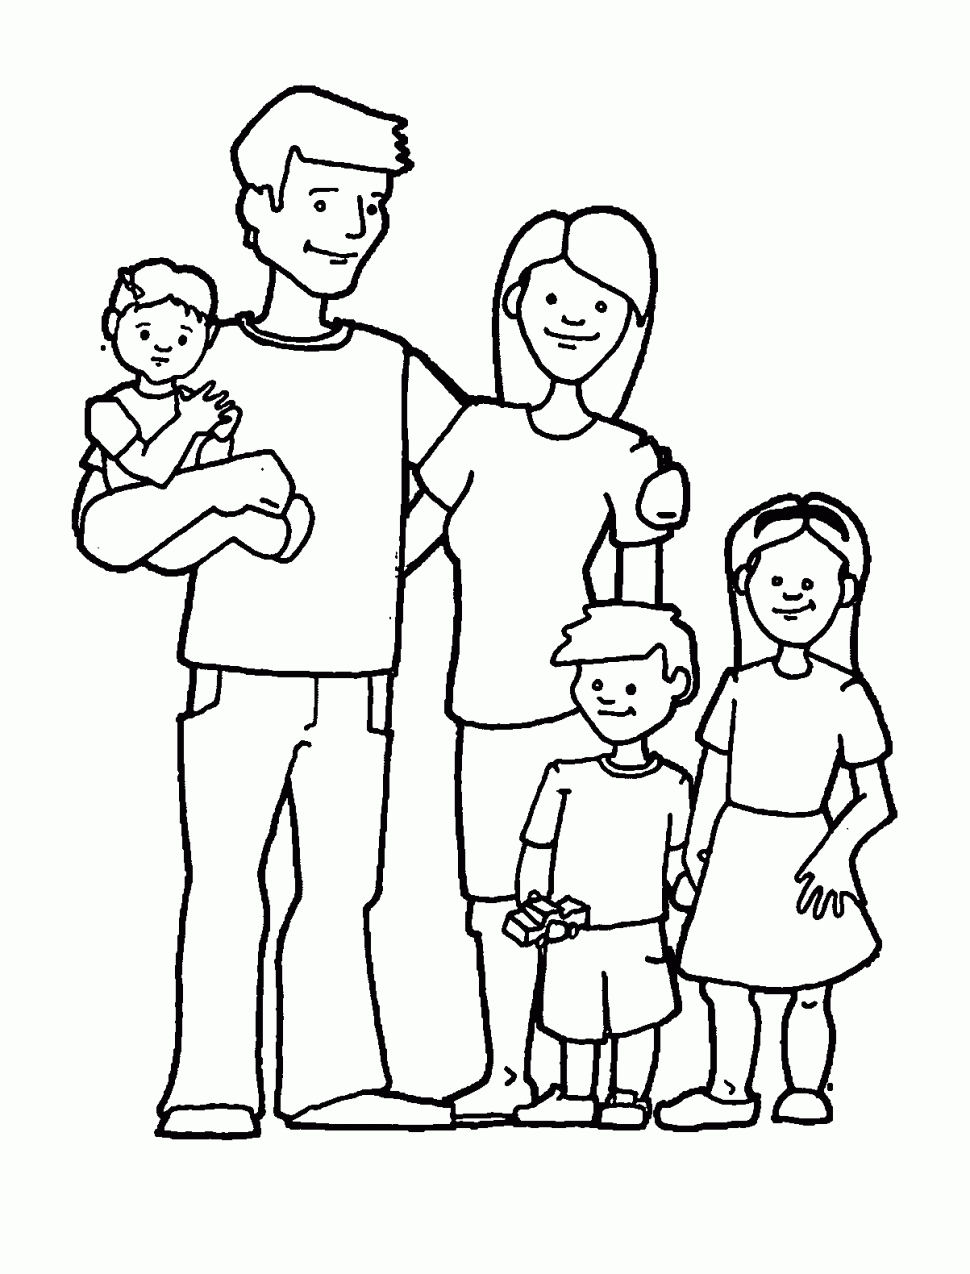 970x1274 Coloring Pages Of Families Coloring Pages Of Families Coloring